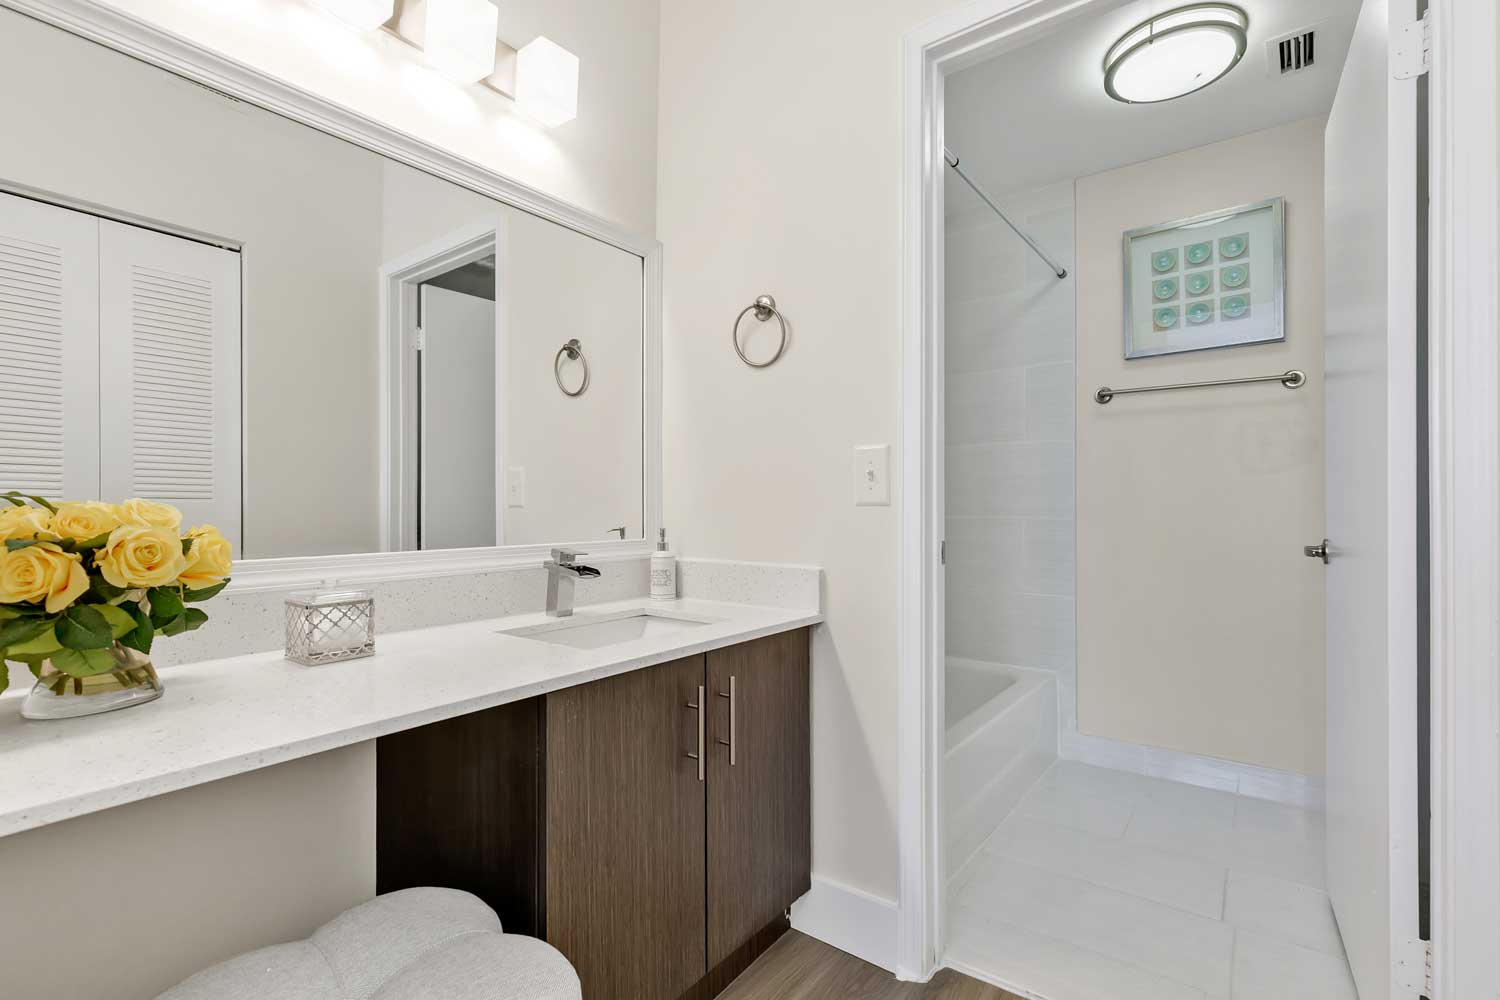 Bathroom at Windsor Castle Apartments in Coral Springs, Florida